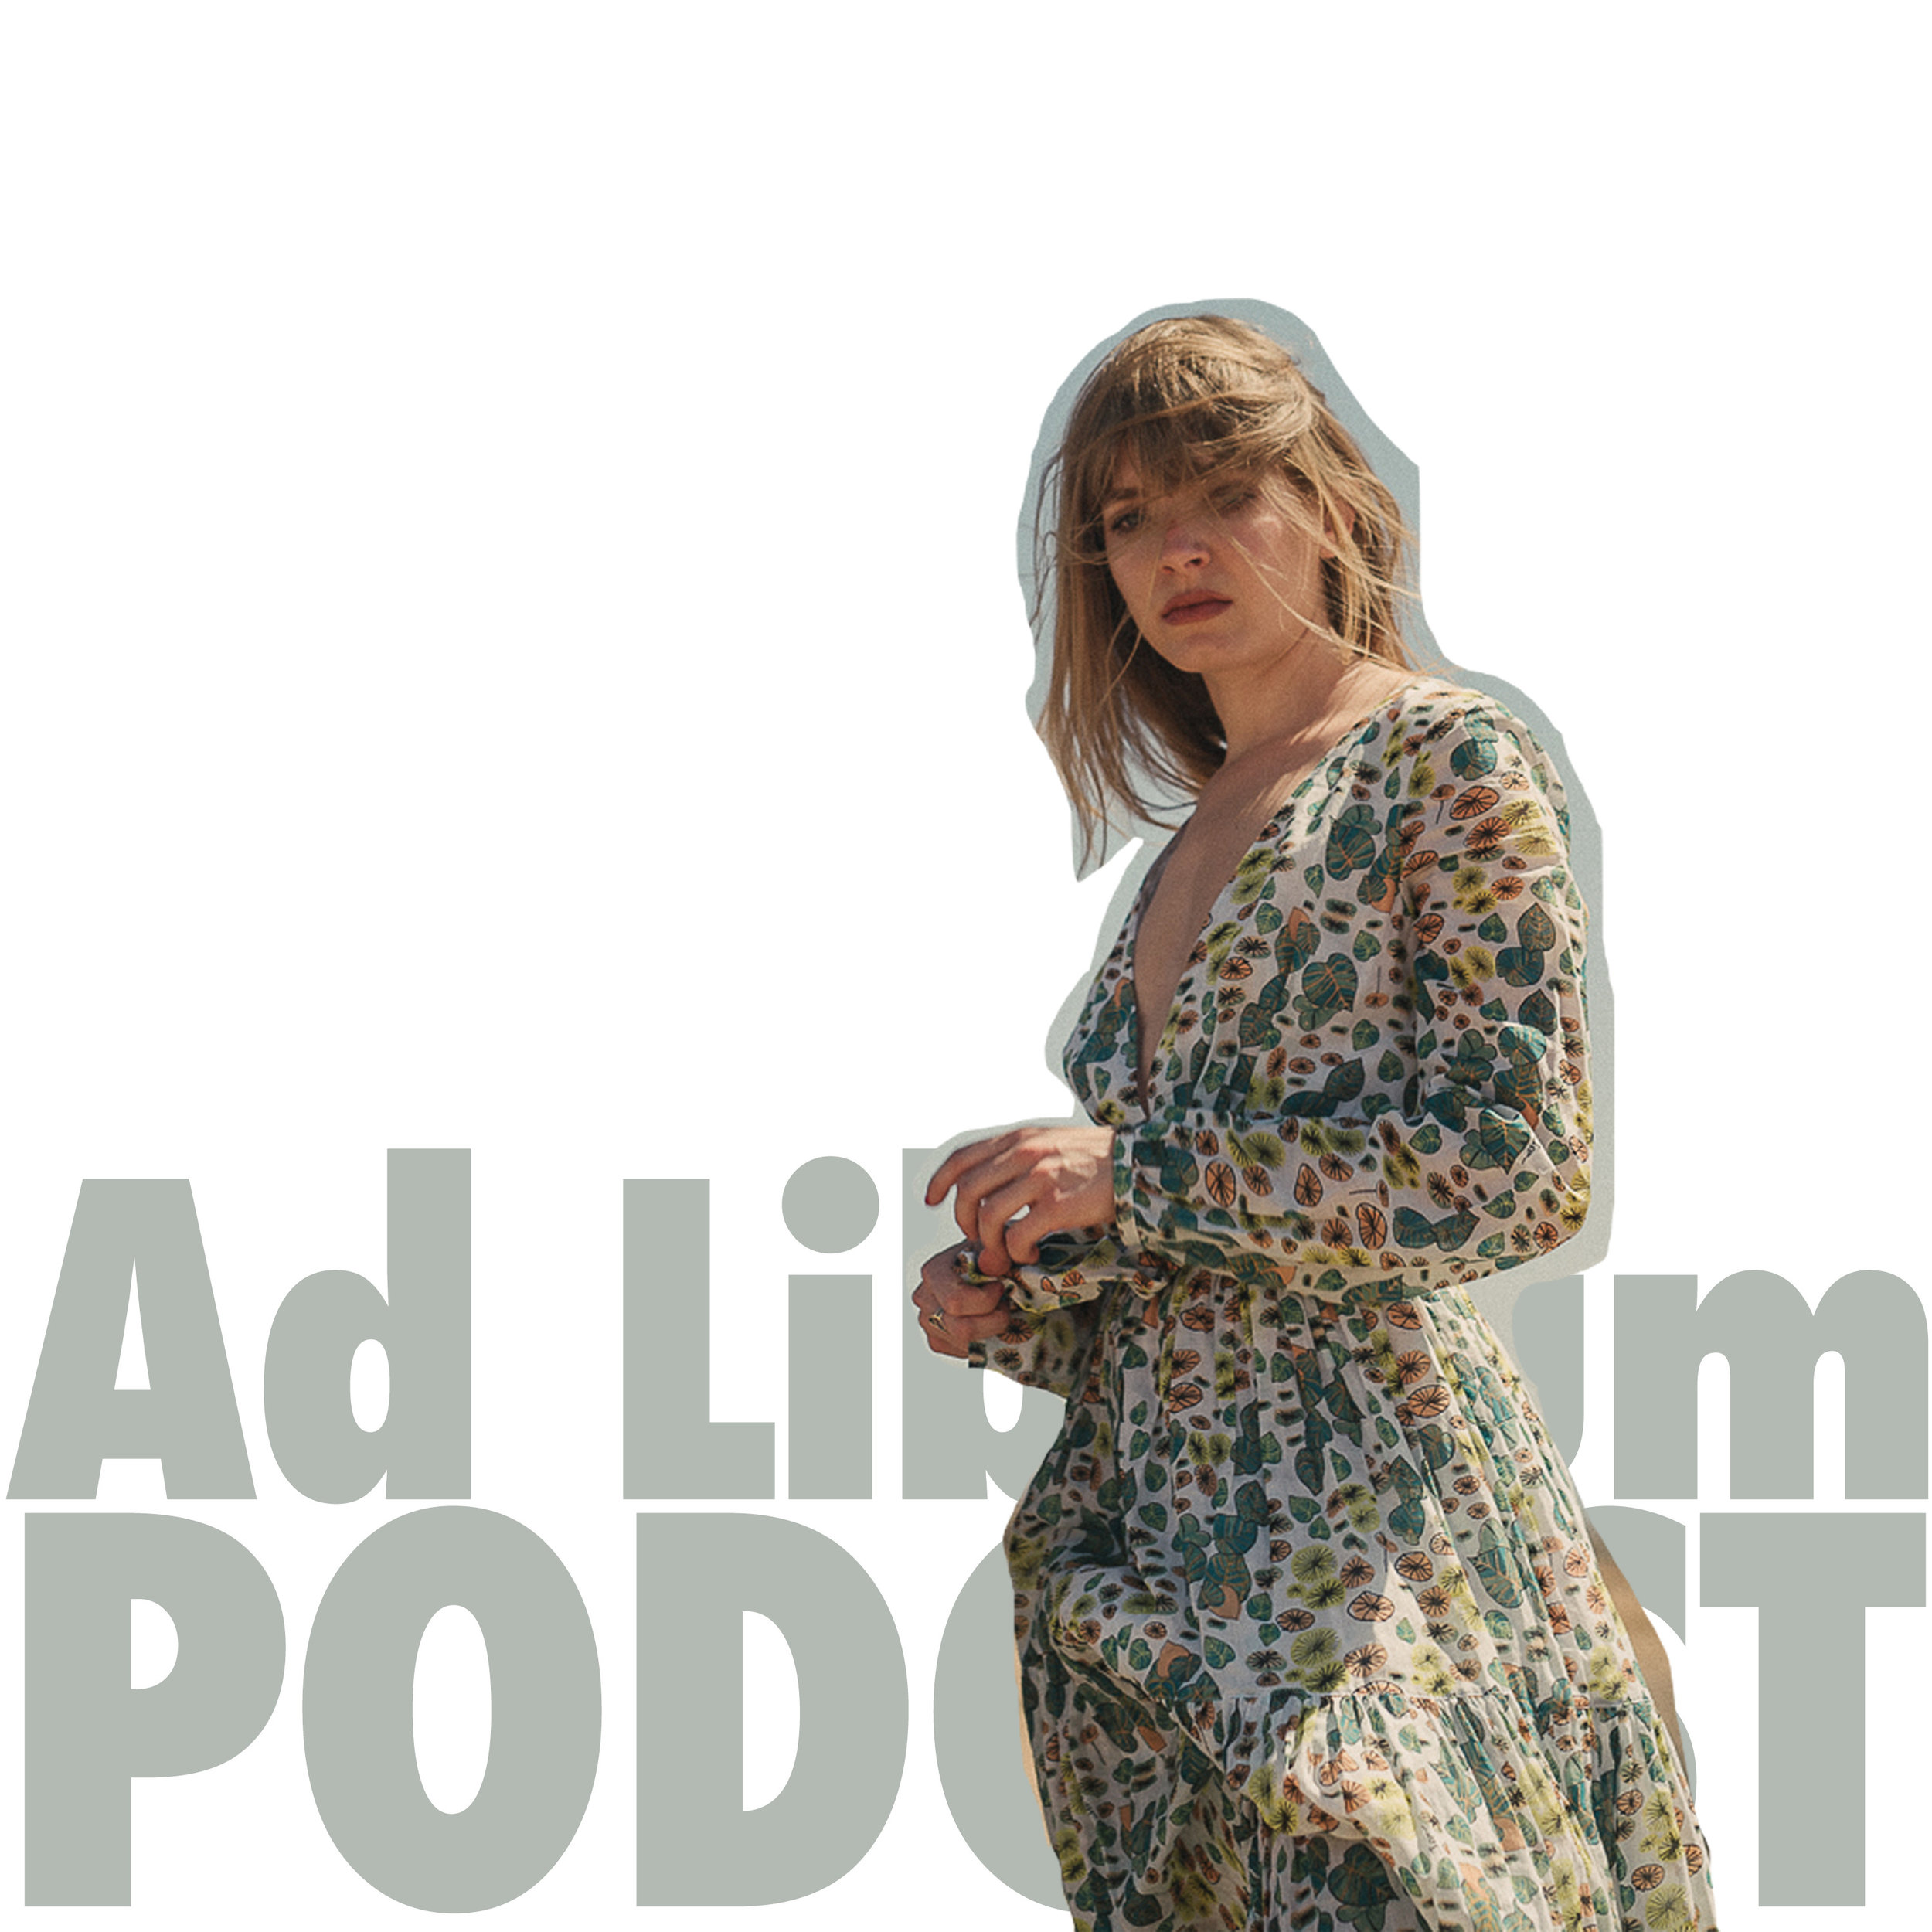 Ad Libitum: the podcast - The podcast contains my audio diaries and philosophical reflexionsIn English + Spanish